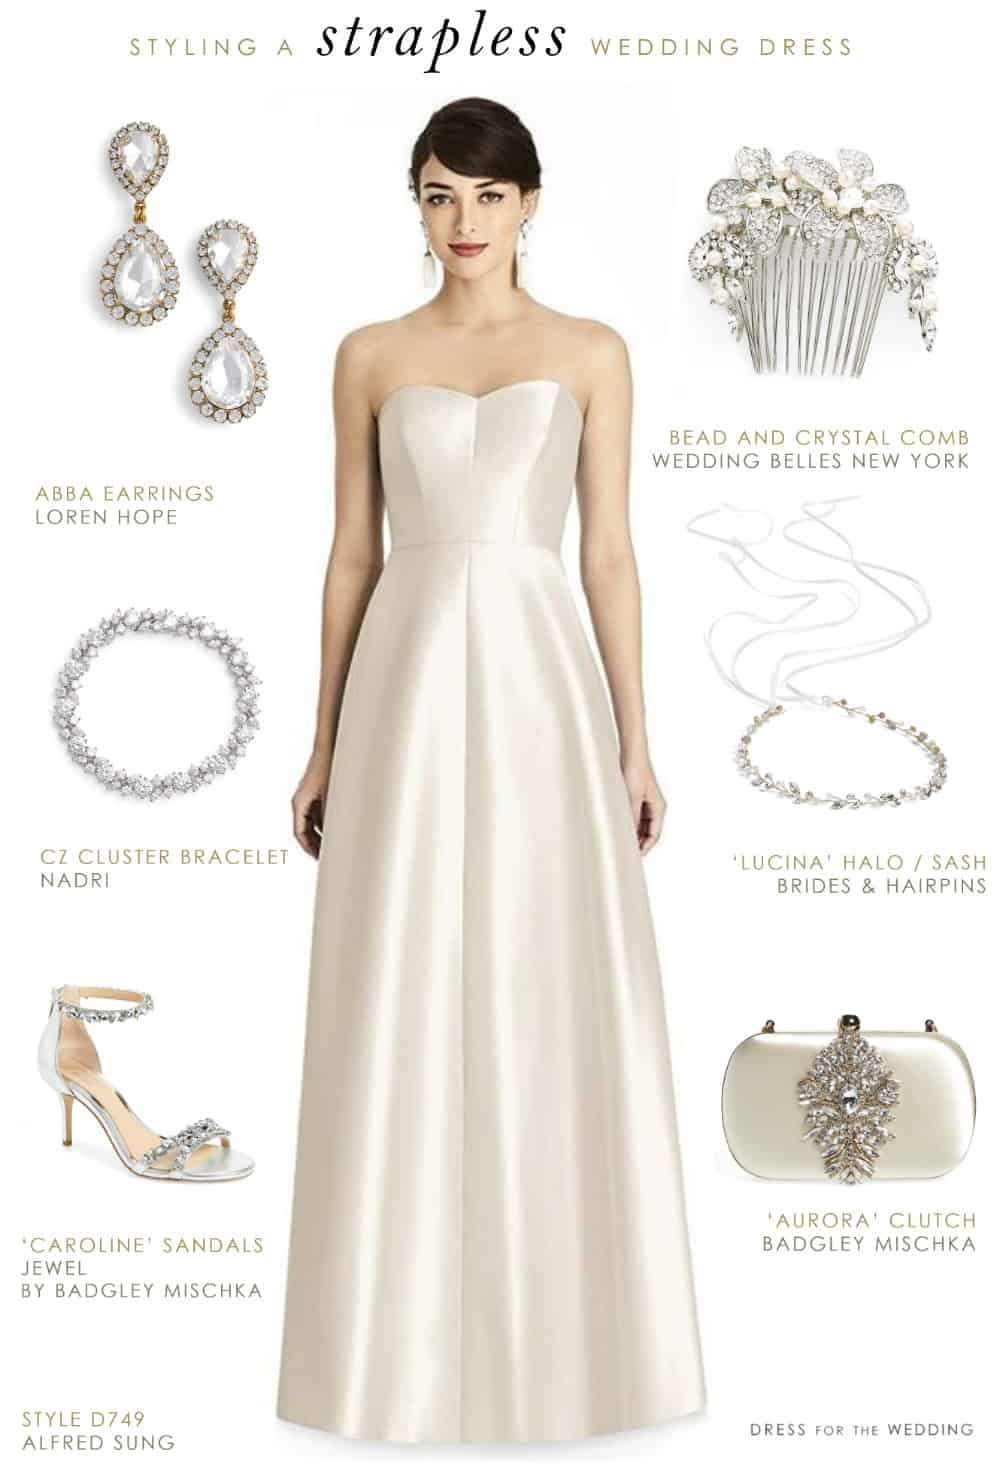 Accessories And Jewelry For A Strapless Wedding Dress